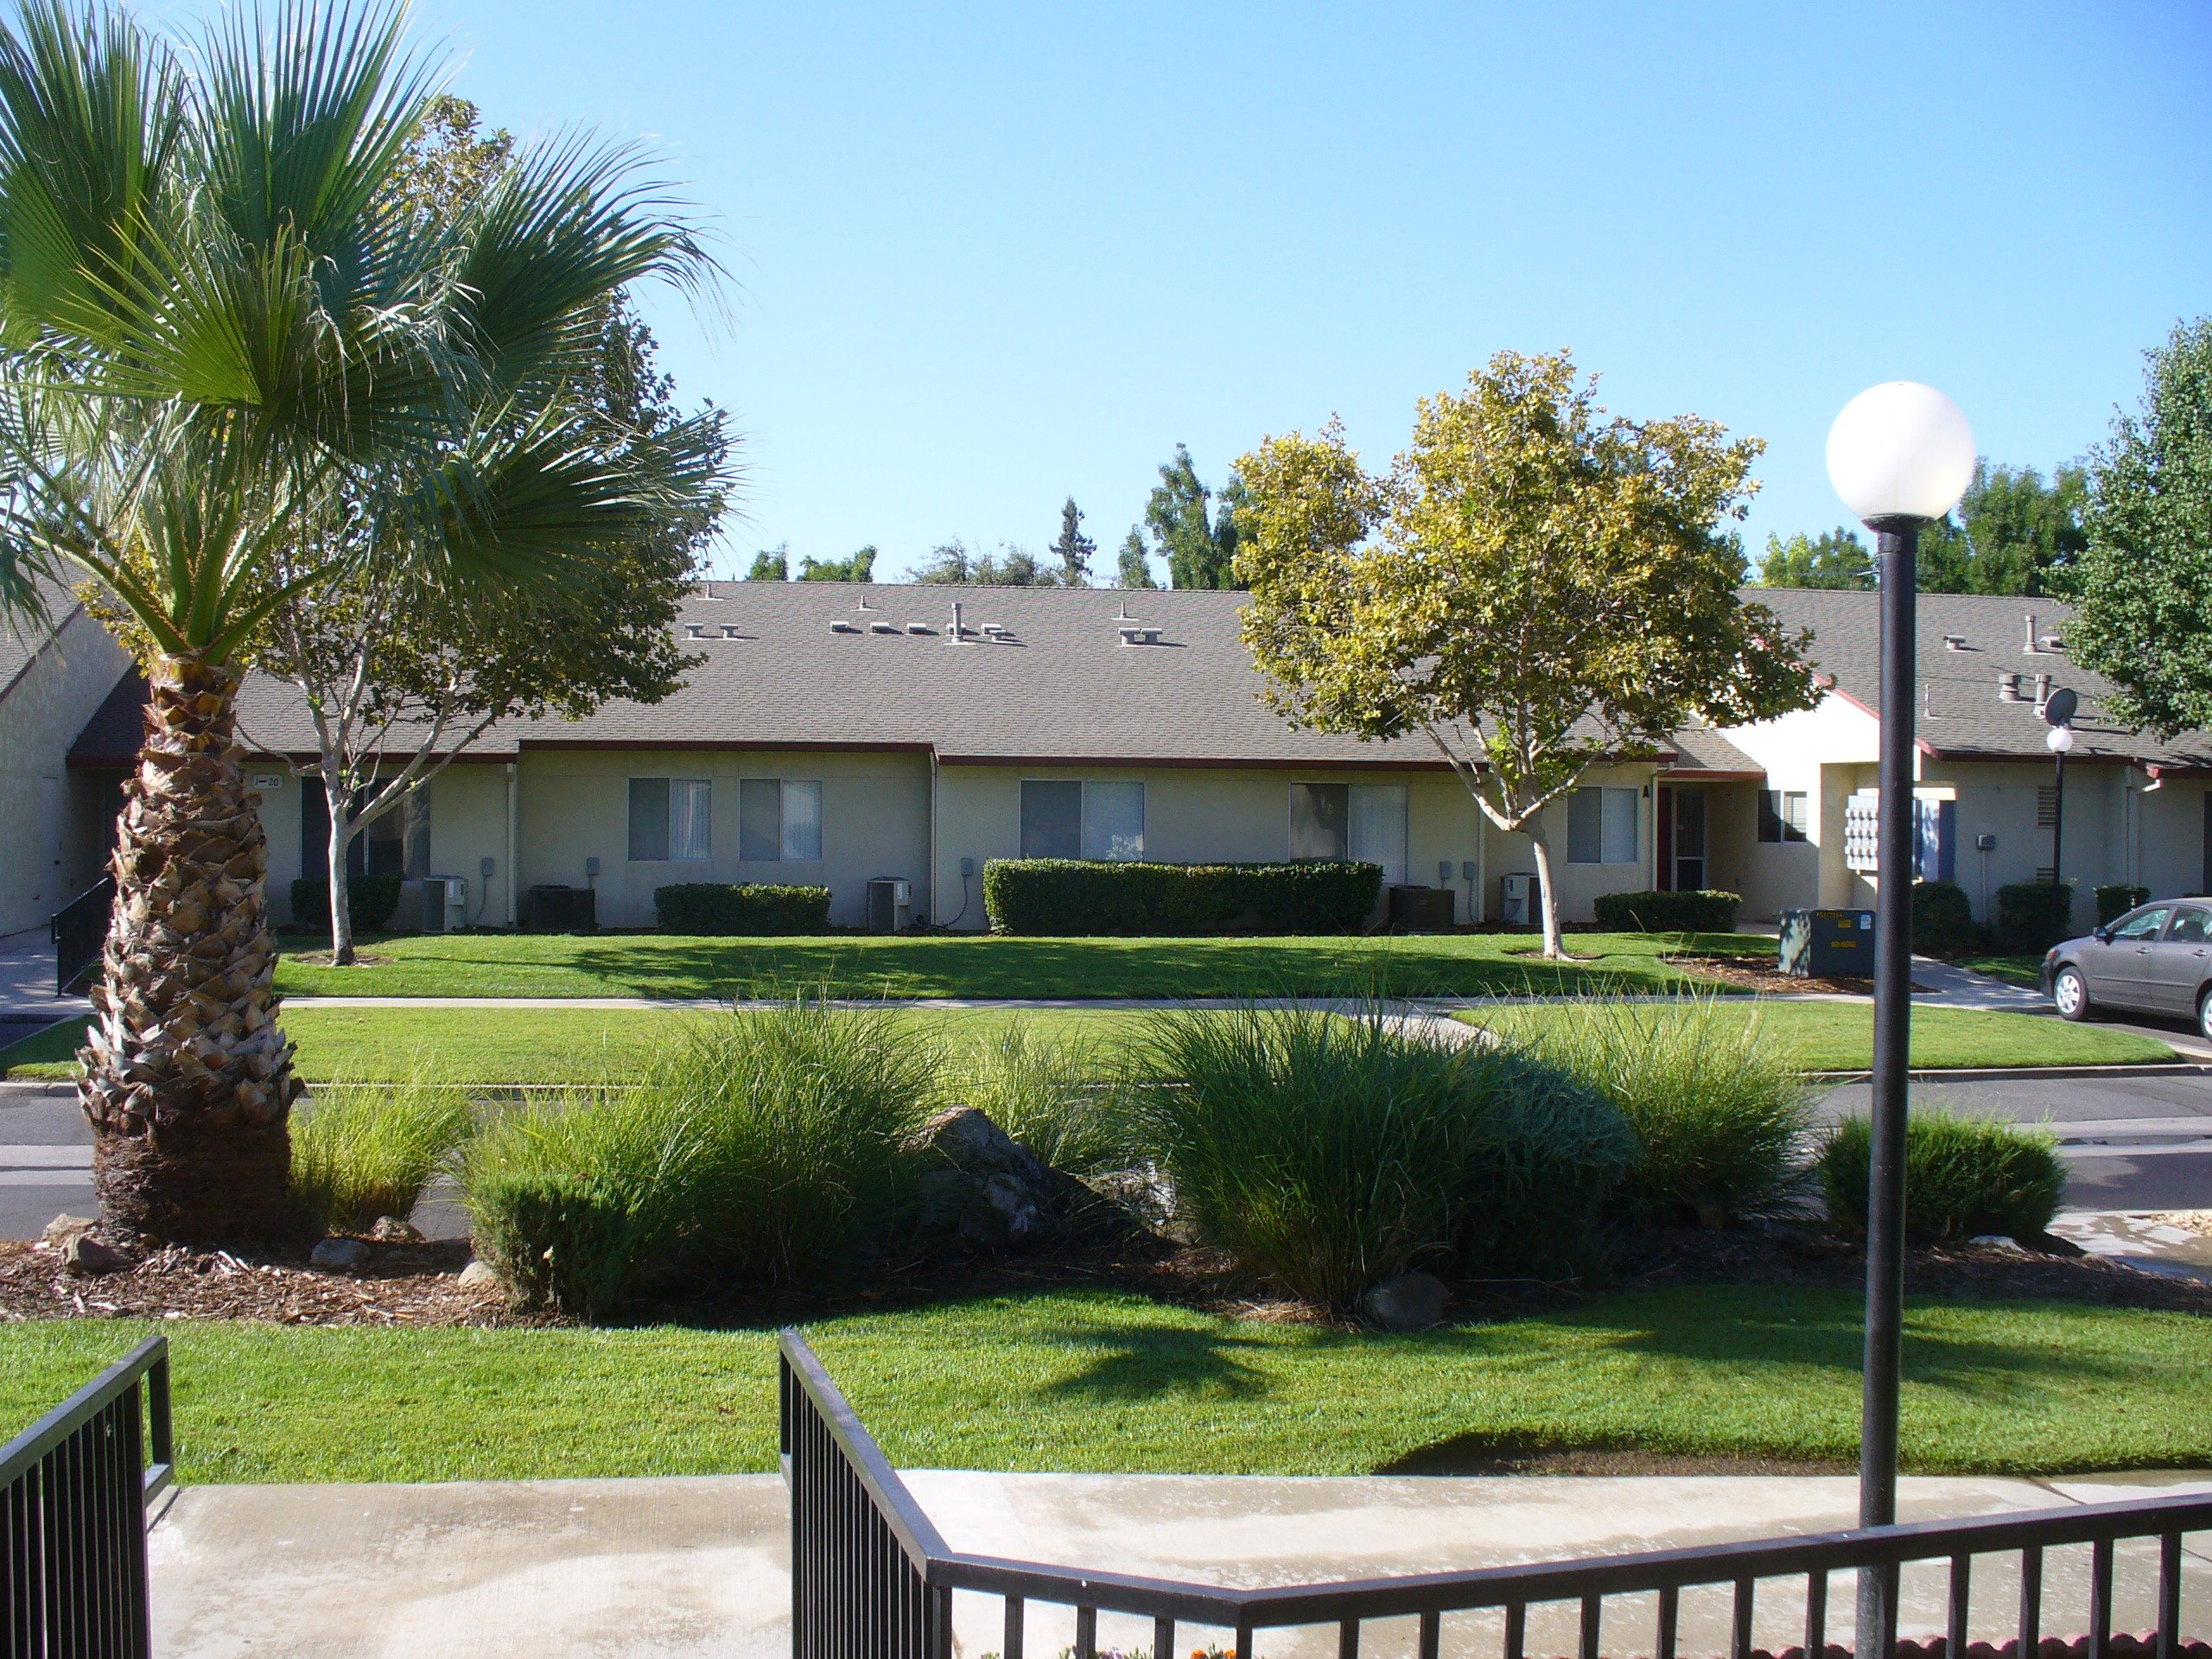 Woodlake Manor Apartments